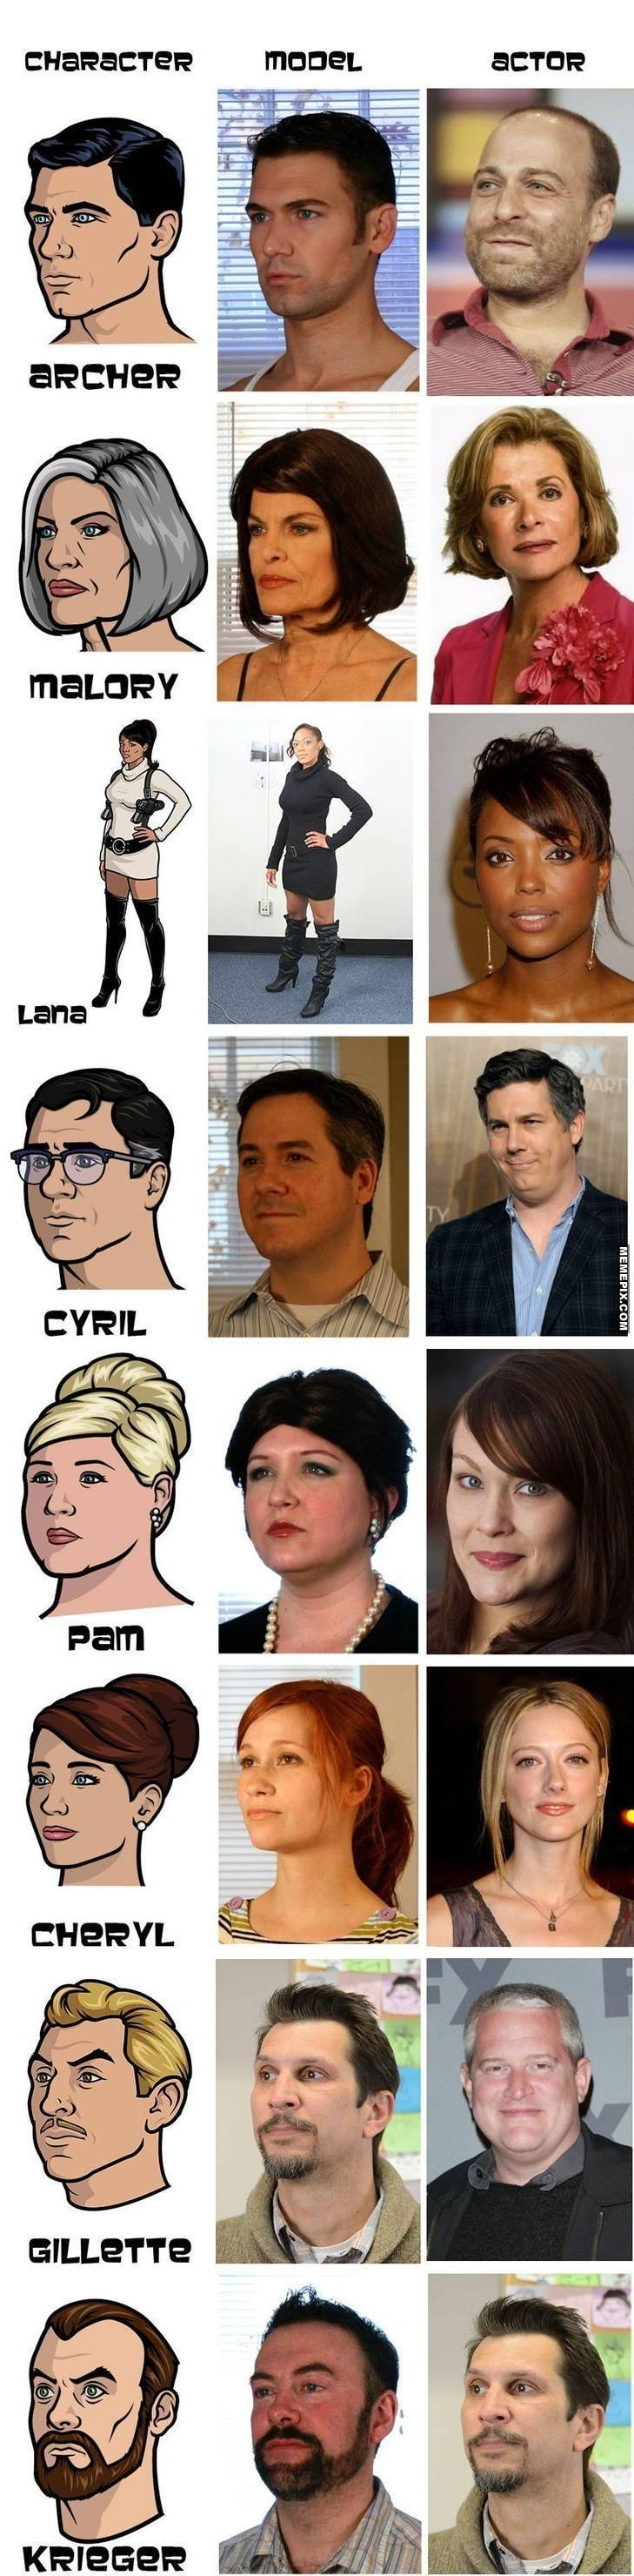 Here S A Fun Picture Comparing Archer Characters With Their Real Life Counterpart And The Actors That V Archer Characters Funny Photos Of People Archer Tv Show